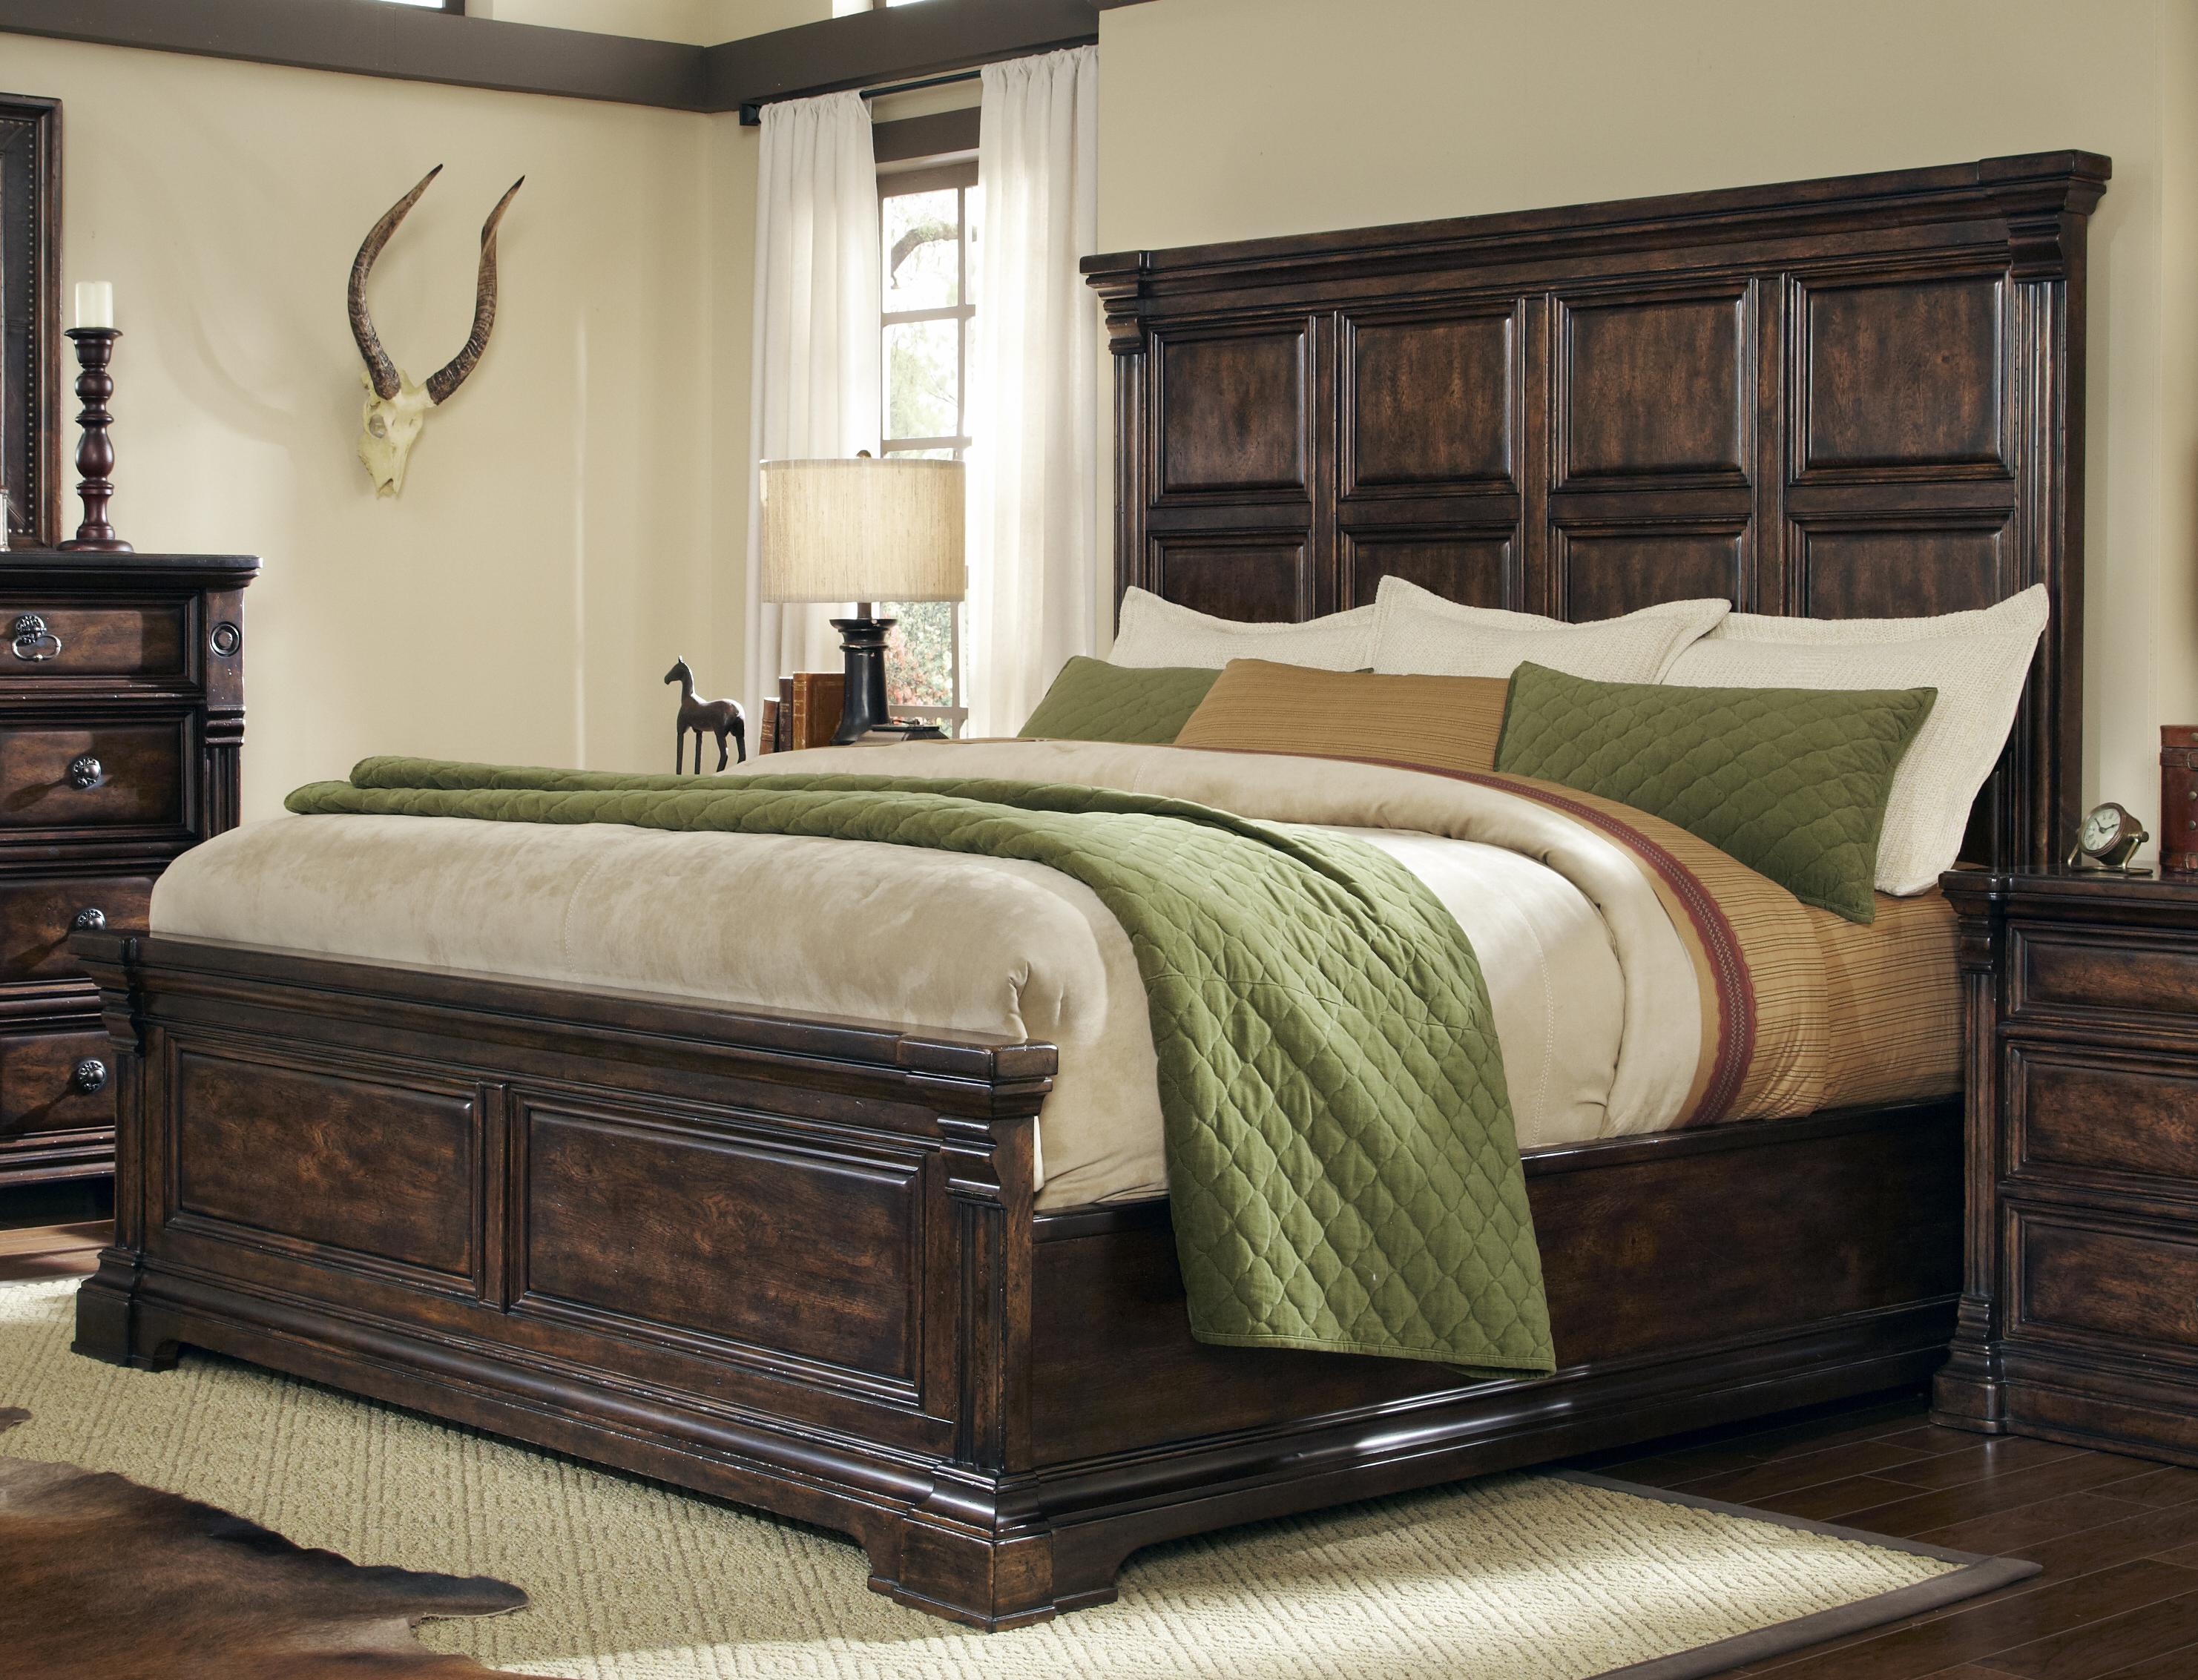 king frame and panel bed - Panel Bed Frame